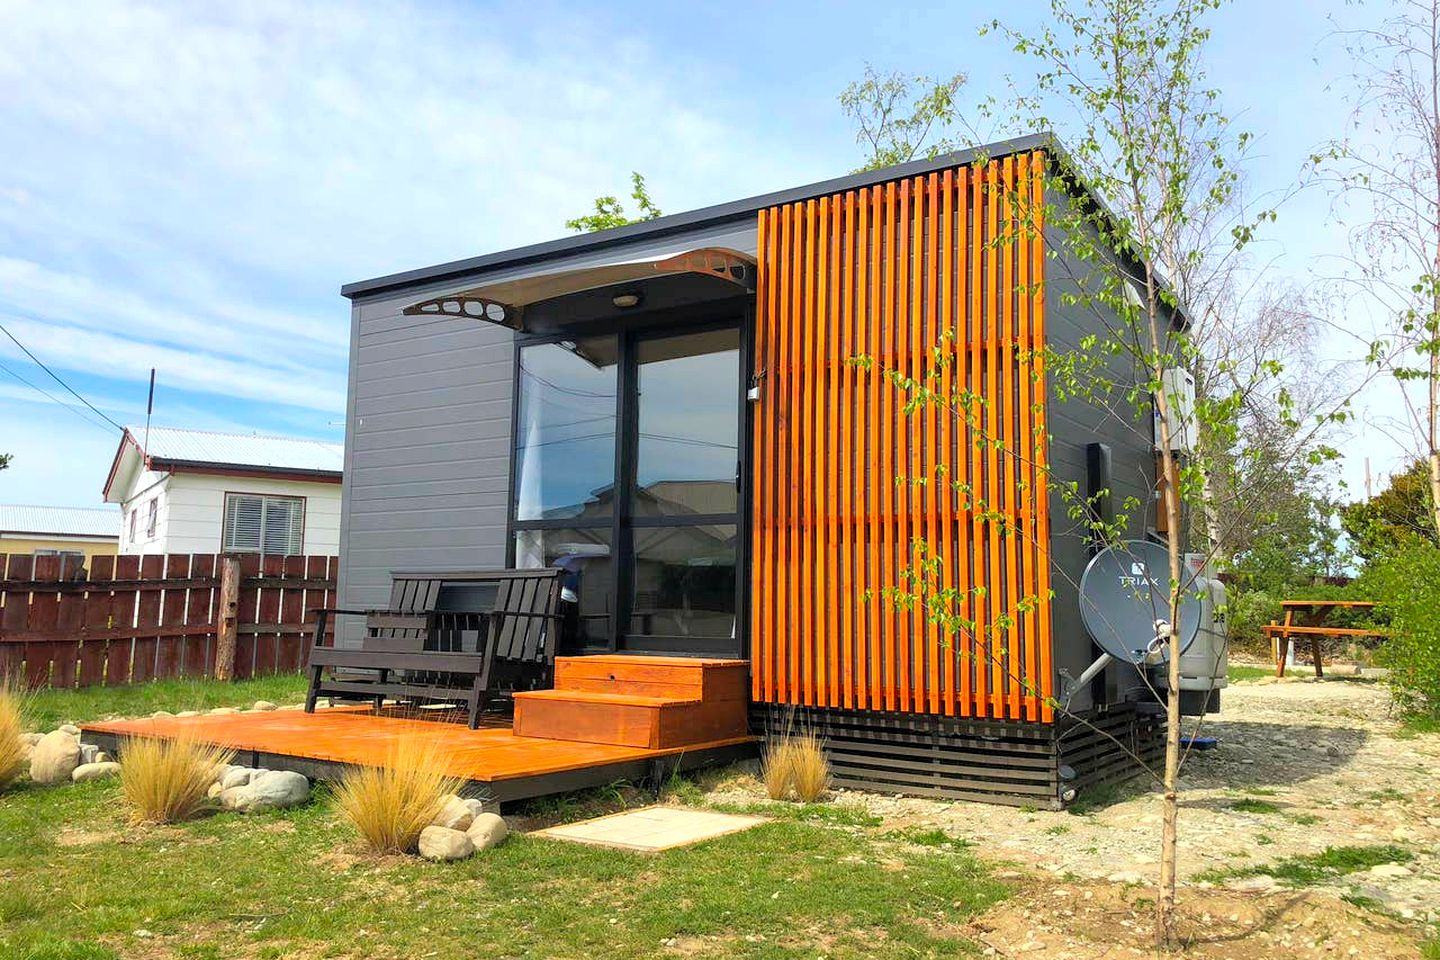 Tiny house rental, ideal for romantic getaways on the South Island